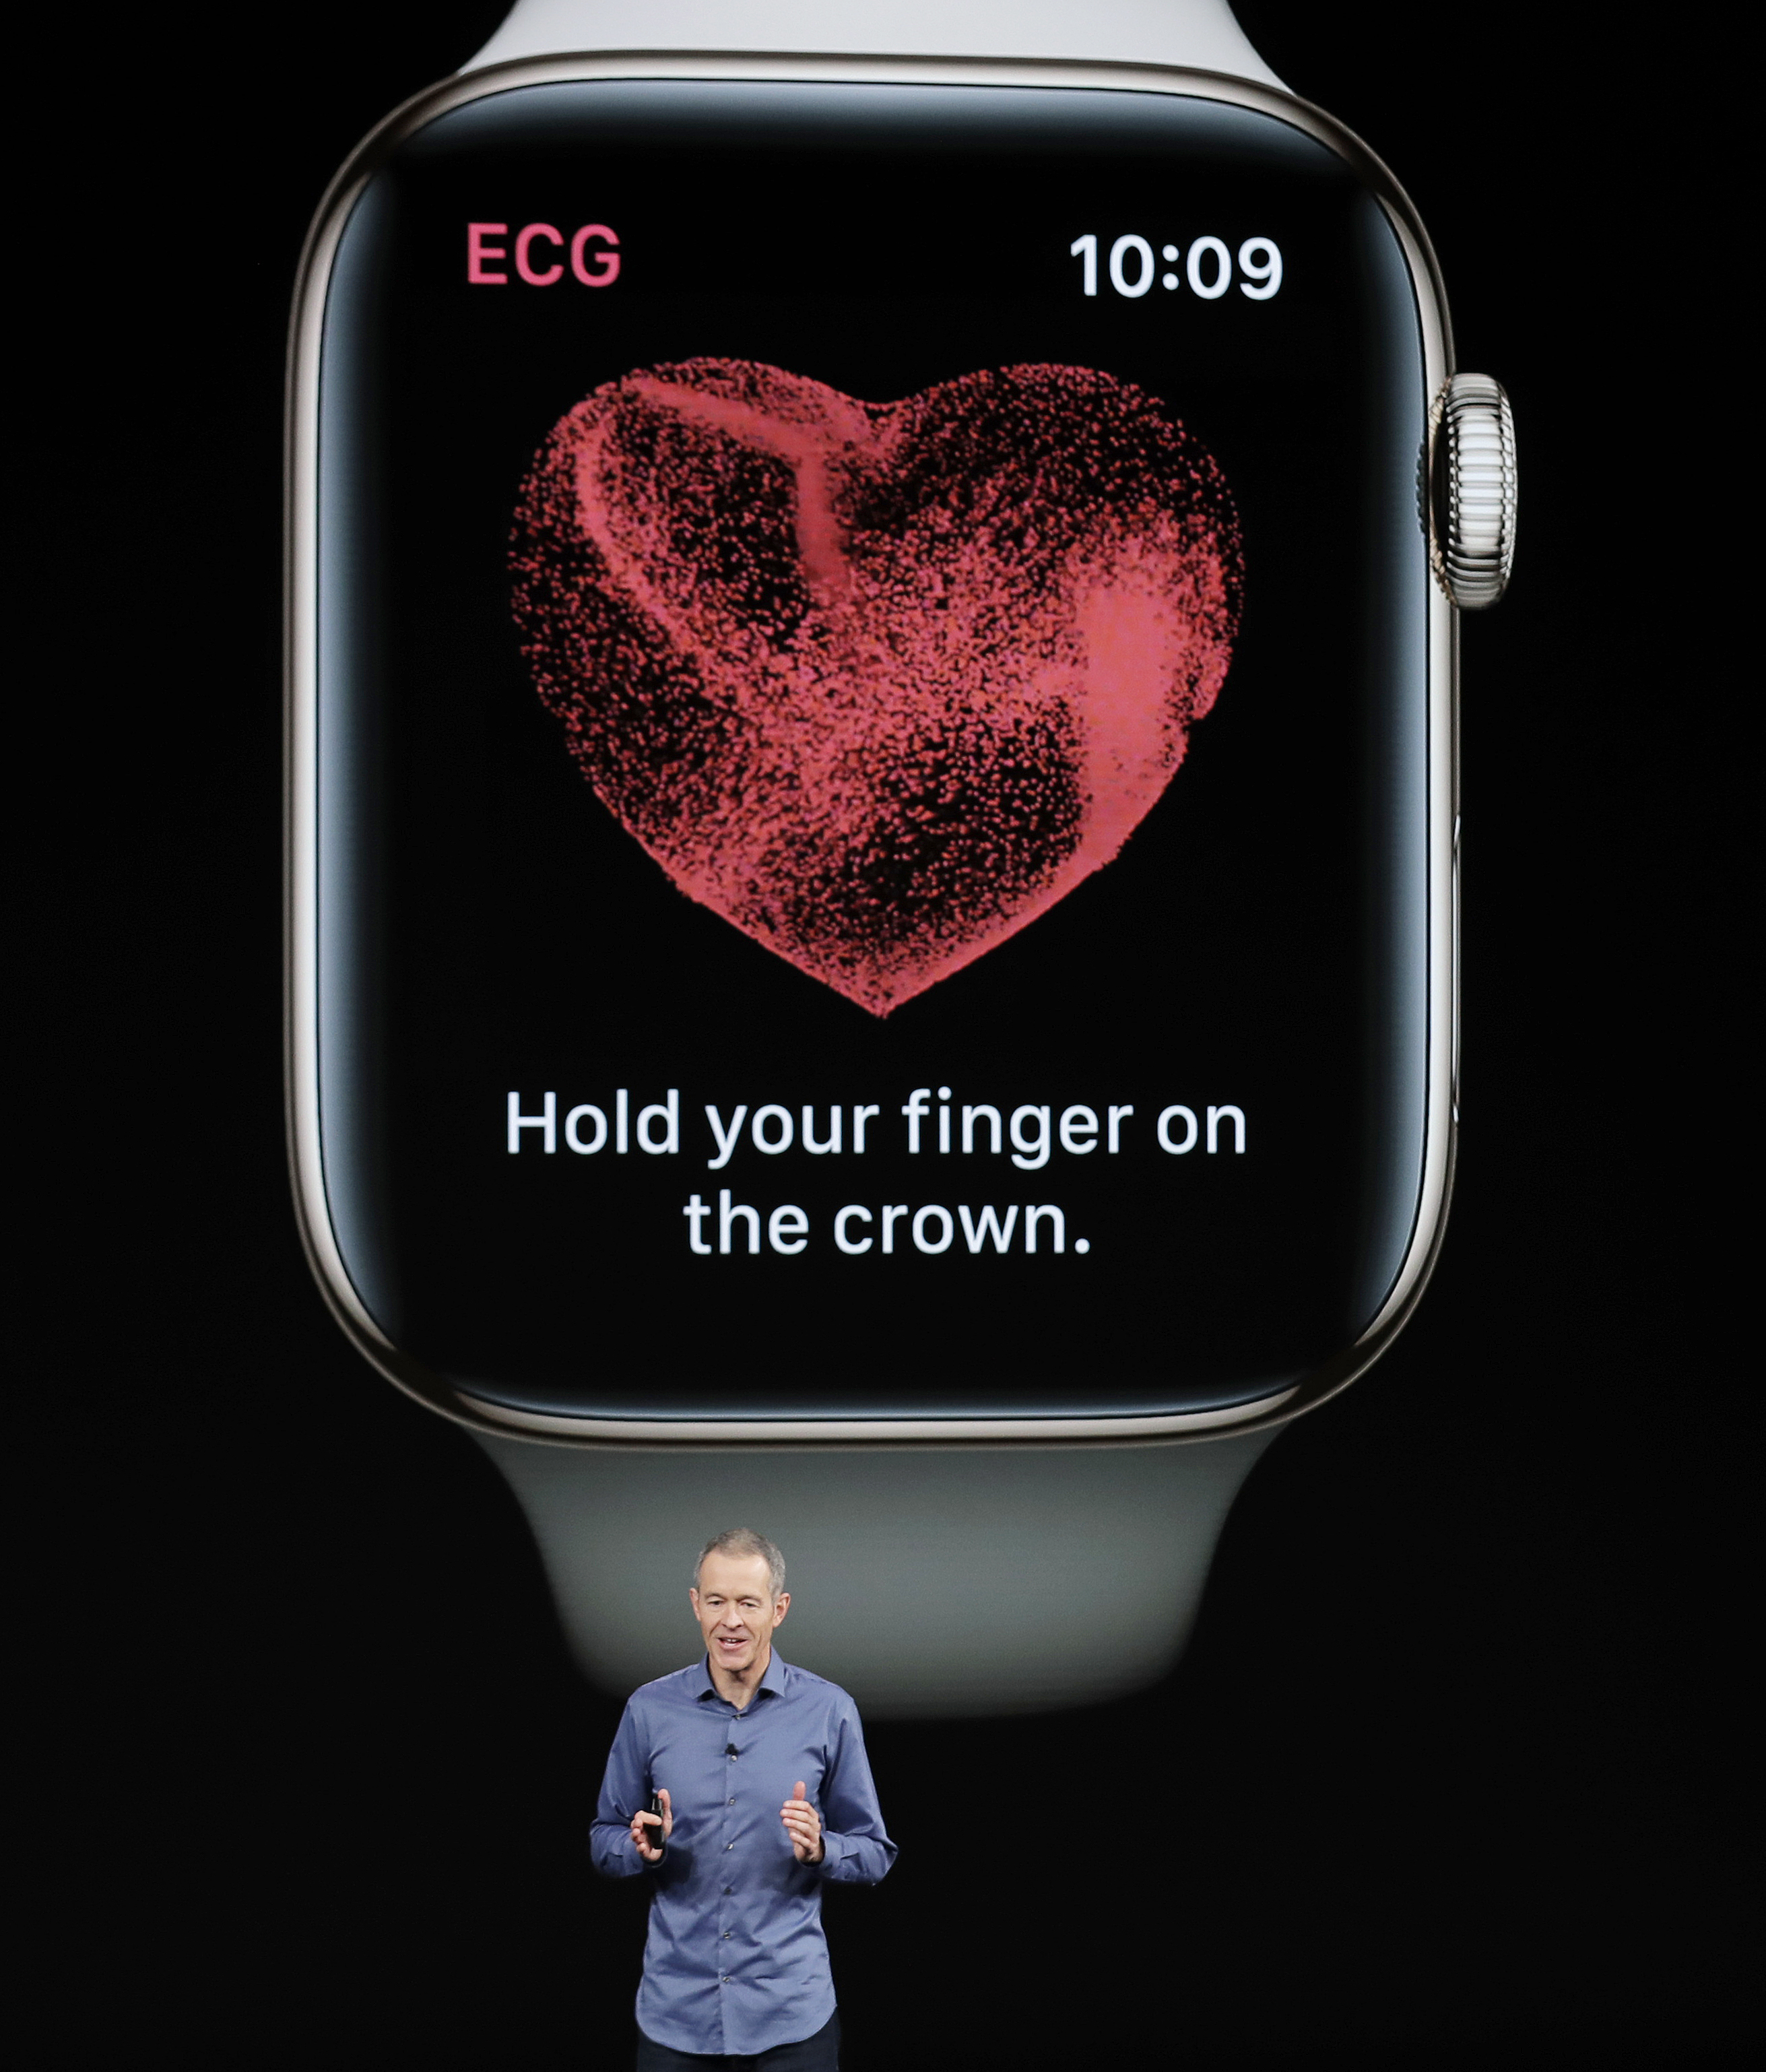 <div class='meta'><div class='origin-logo' data-origin='none'></div><span class='caption-text' data-credit='AP Photo/Marcio Jose Sanchez'>Jeff Williams speaks about the Apple Watch Series 4 at the Steve Jobs Theater during an event to announce new Apple products Wednesday, Sept. 12, 2018, in Cupertino, Calif.</span></div>